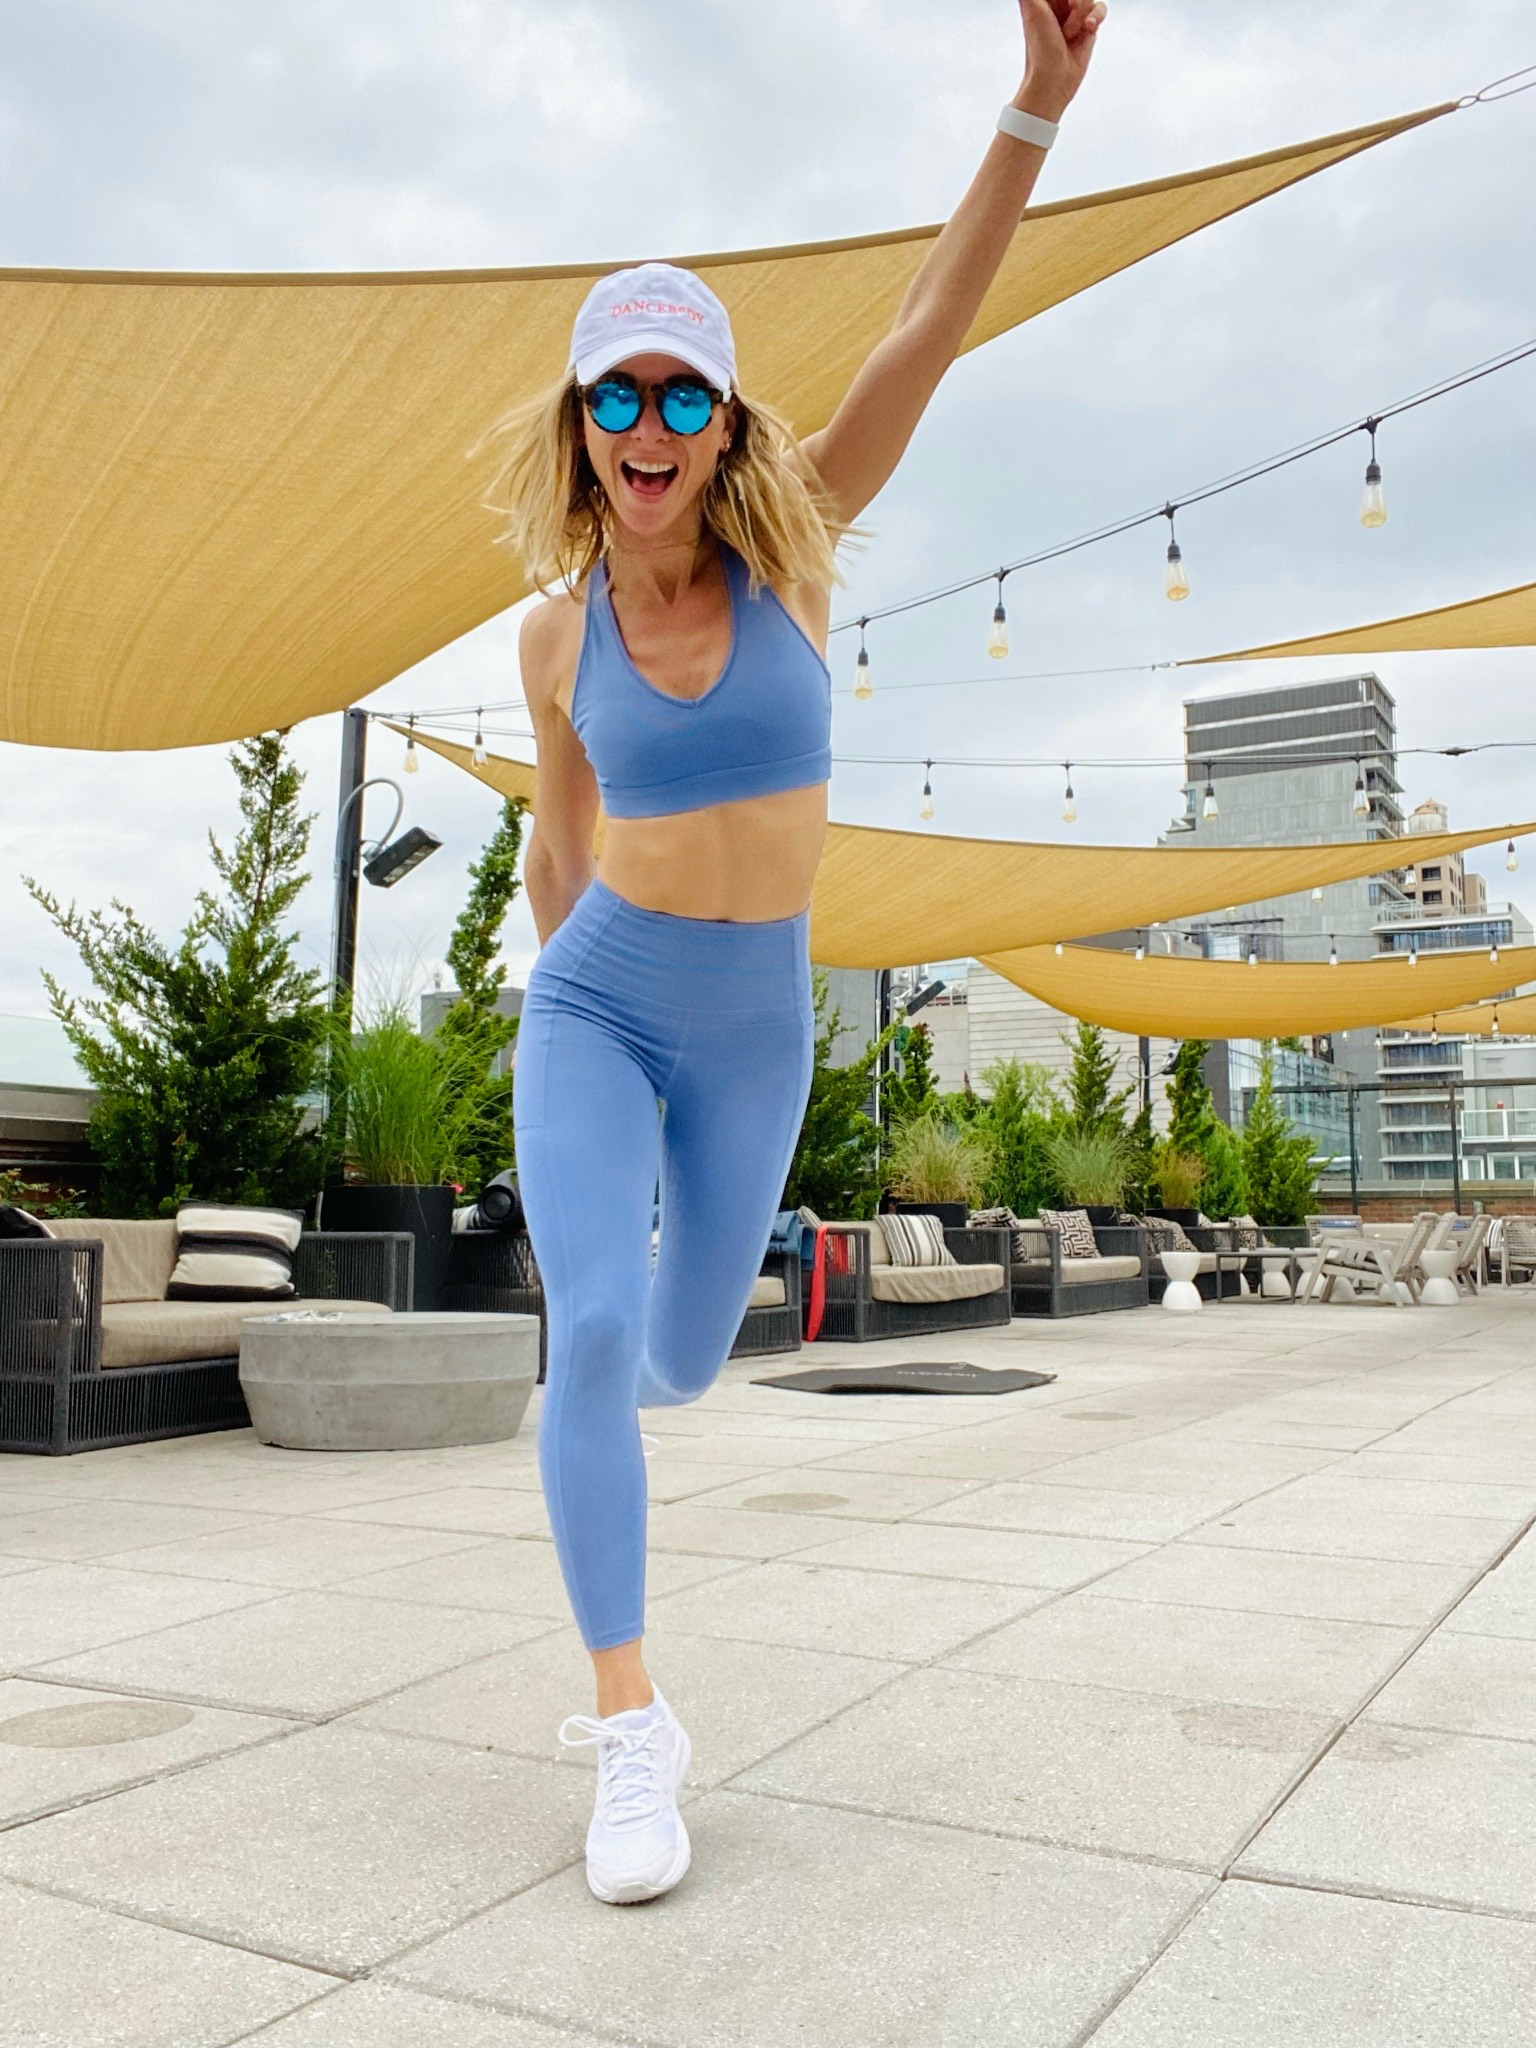 Woman on Arlo SoHo rooftop in blue workout outfit under yellow fabric awning dancing and working out